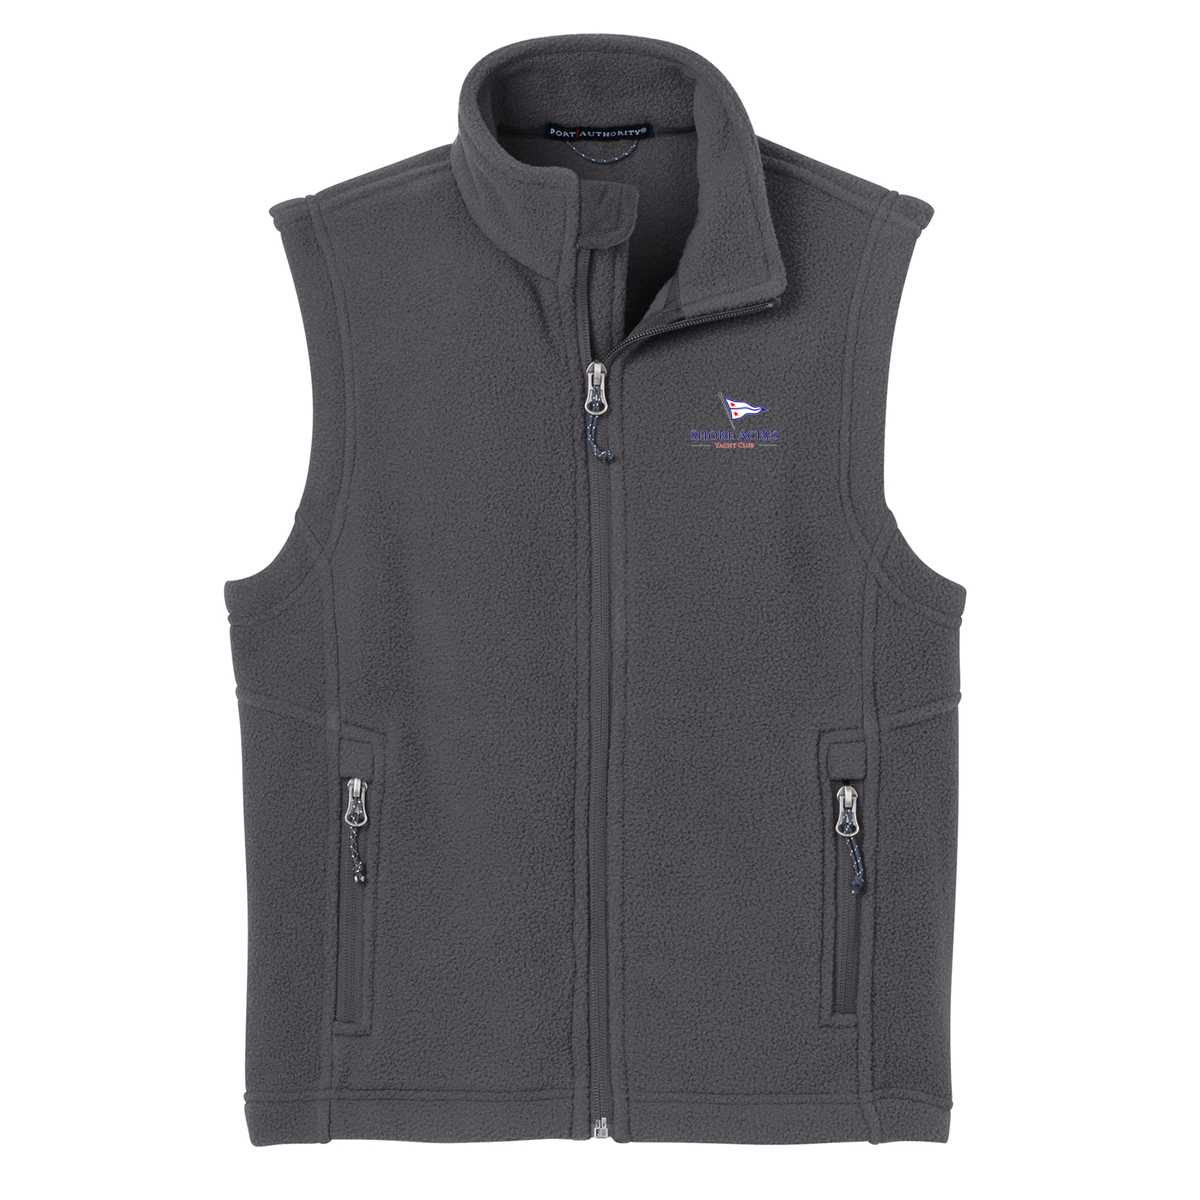 SHORE ACRES YC - PA YOUTH VALUE FLEECE VEST